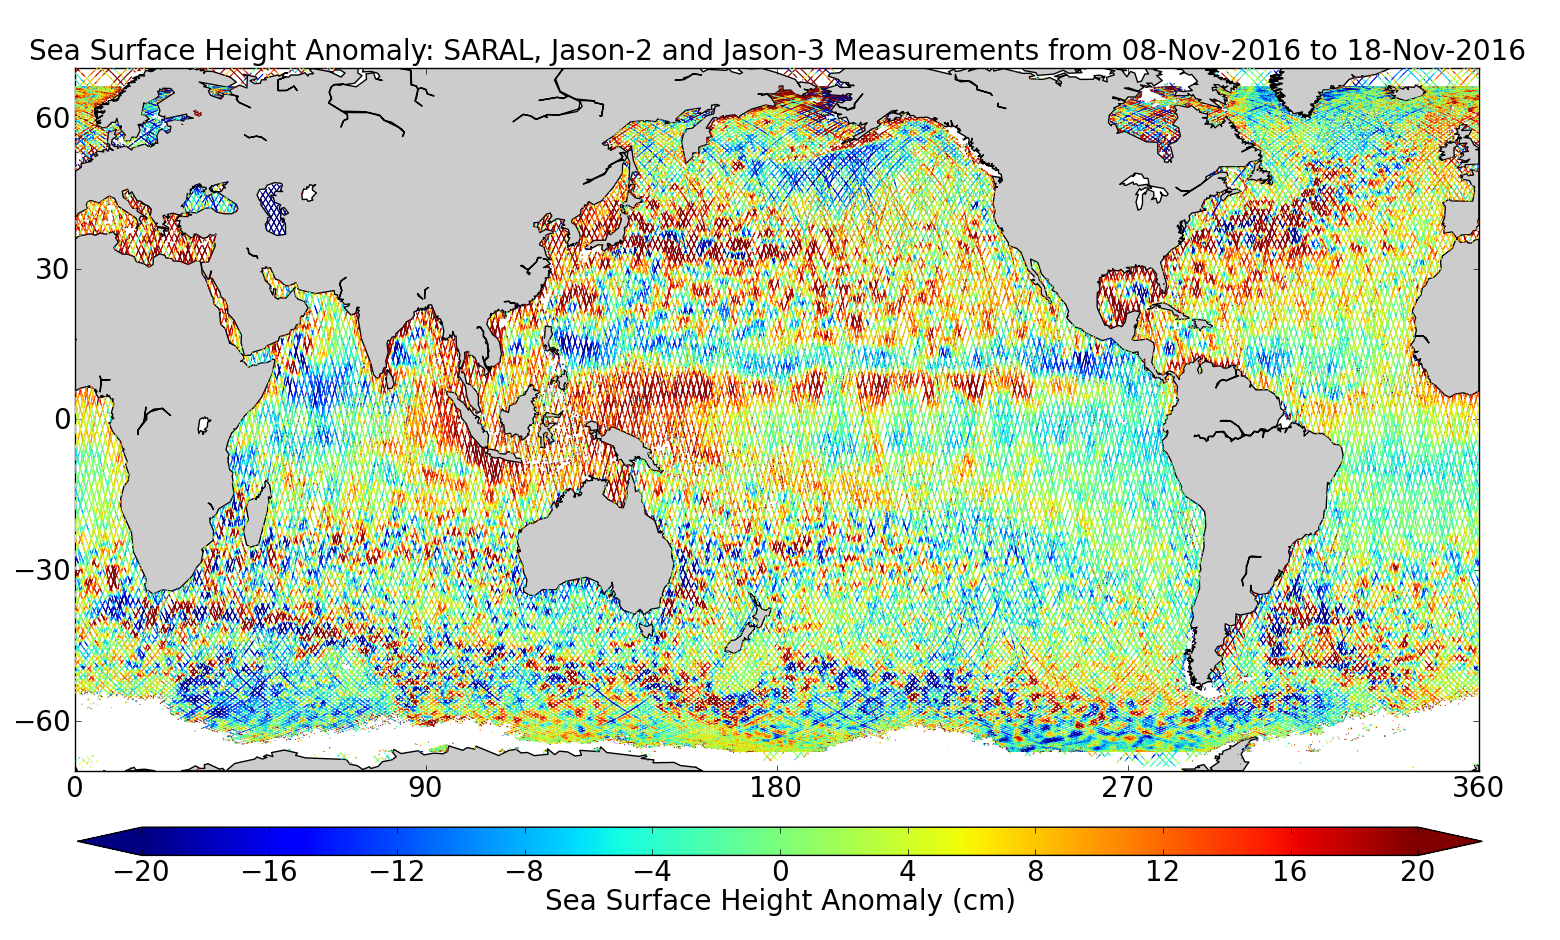 Sea Surface Height Anomaly: SARAL, Jason-2 and Jason-3 Measurements from 08-Nov-2016 to 18-Nov-2016